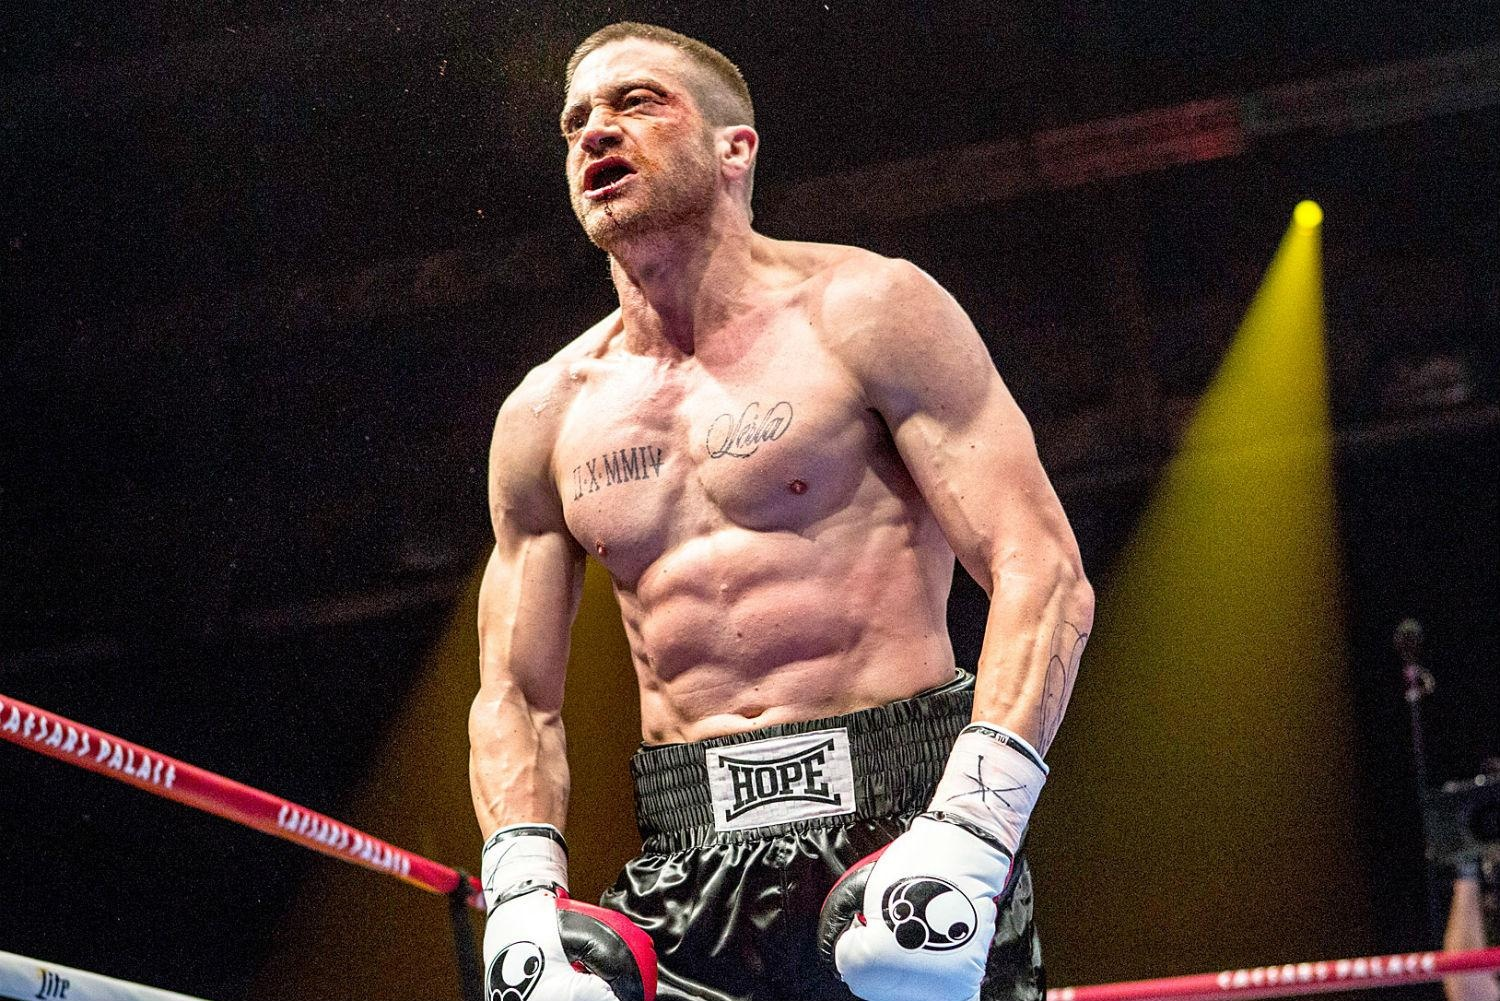 Like Robert De Niro and Daniel Day-Lewis before him, Jake Gyllenhaal transformed his body to play a boxer.